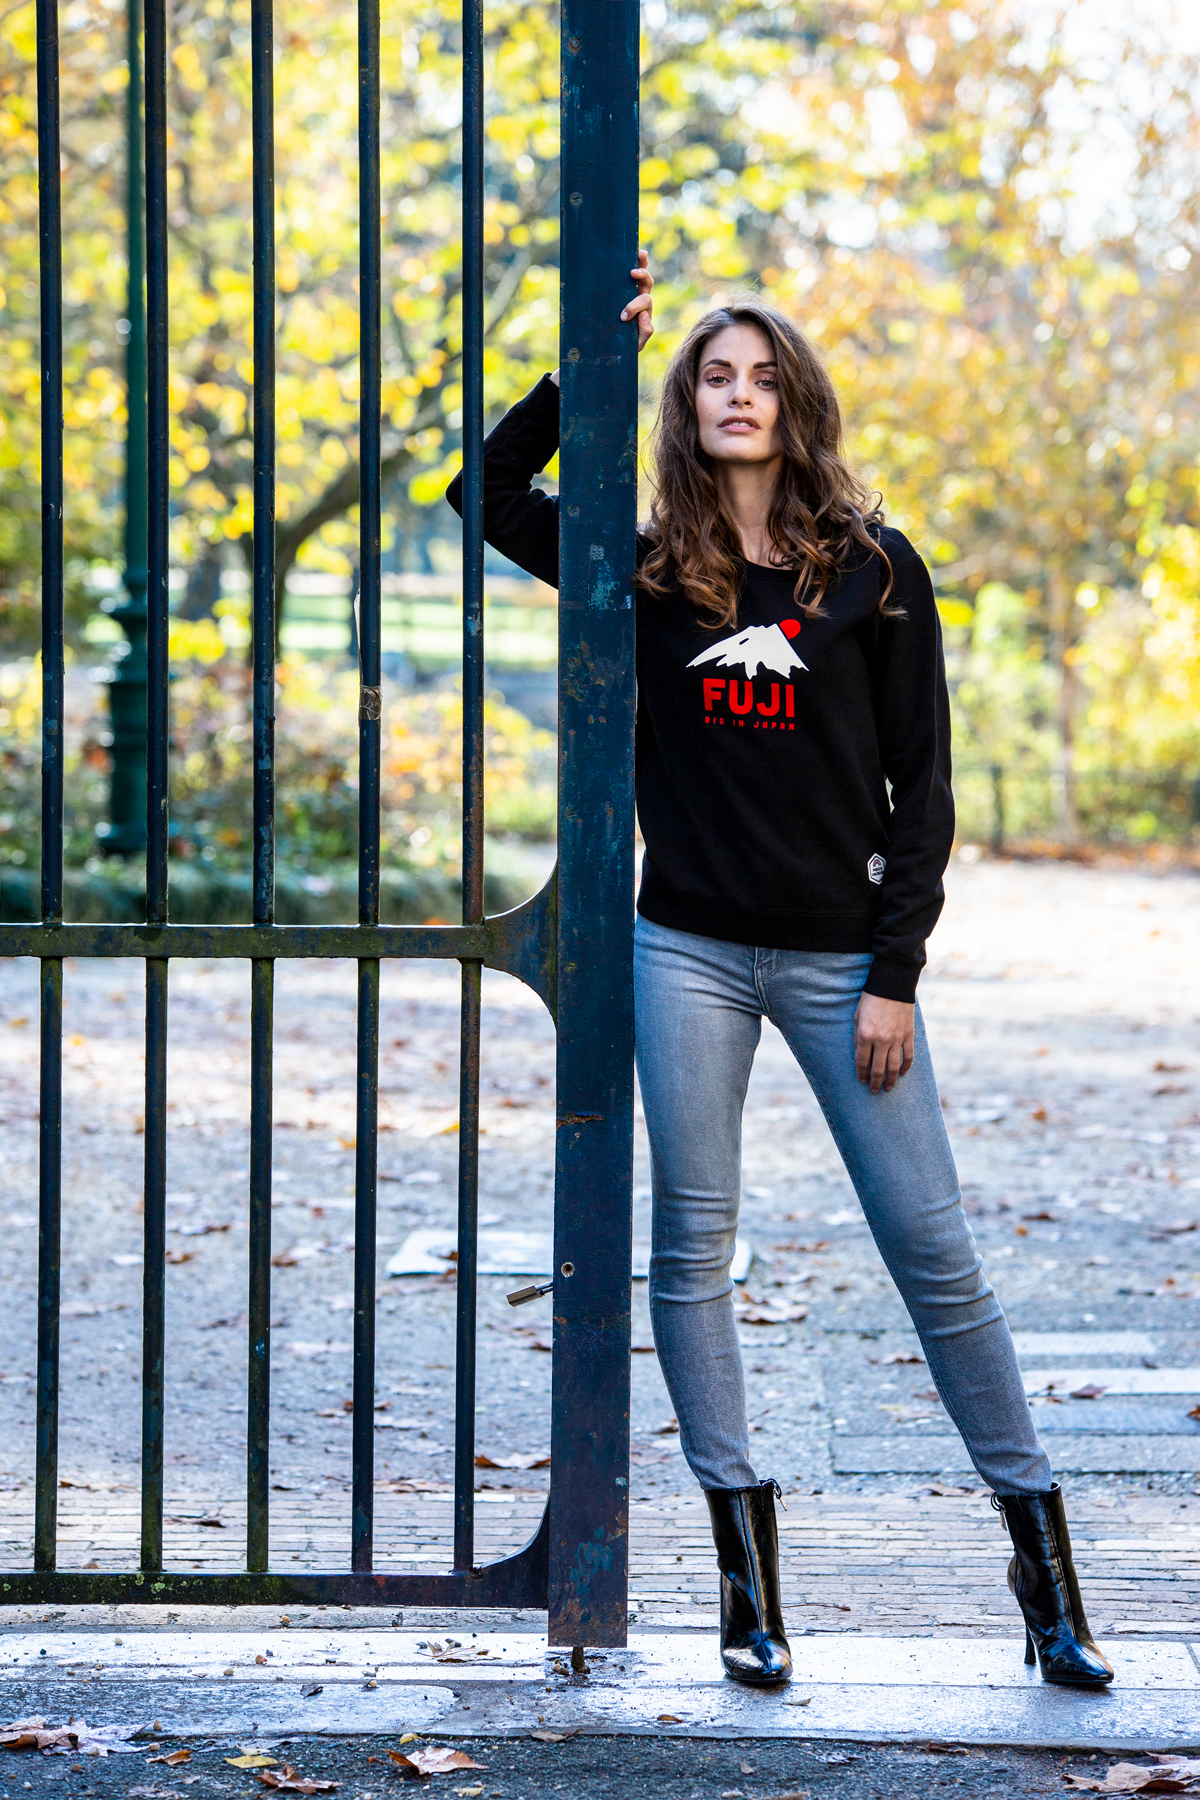 Photo de Sweat femme Sweat femme FUJI chez French Disorder